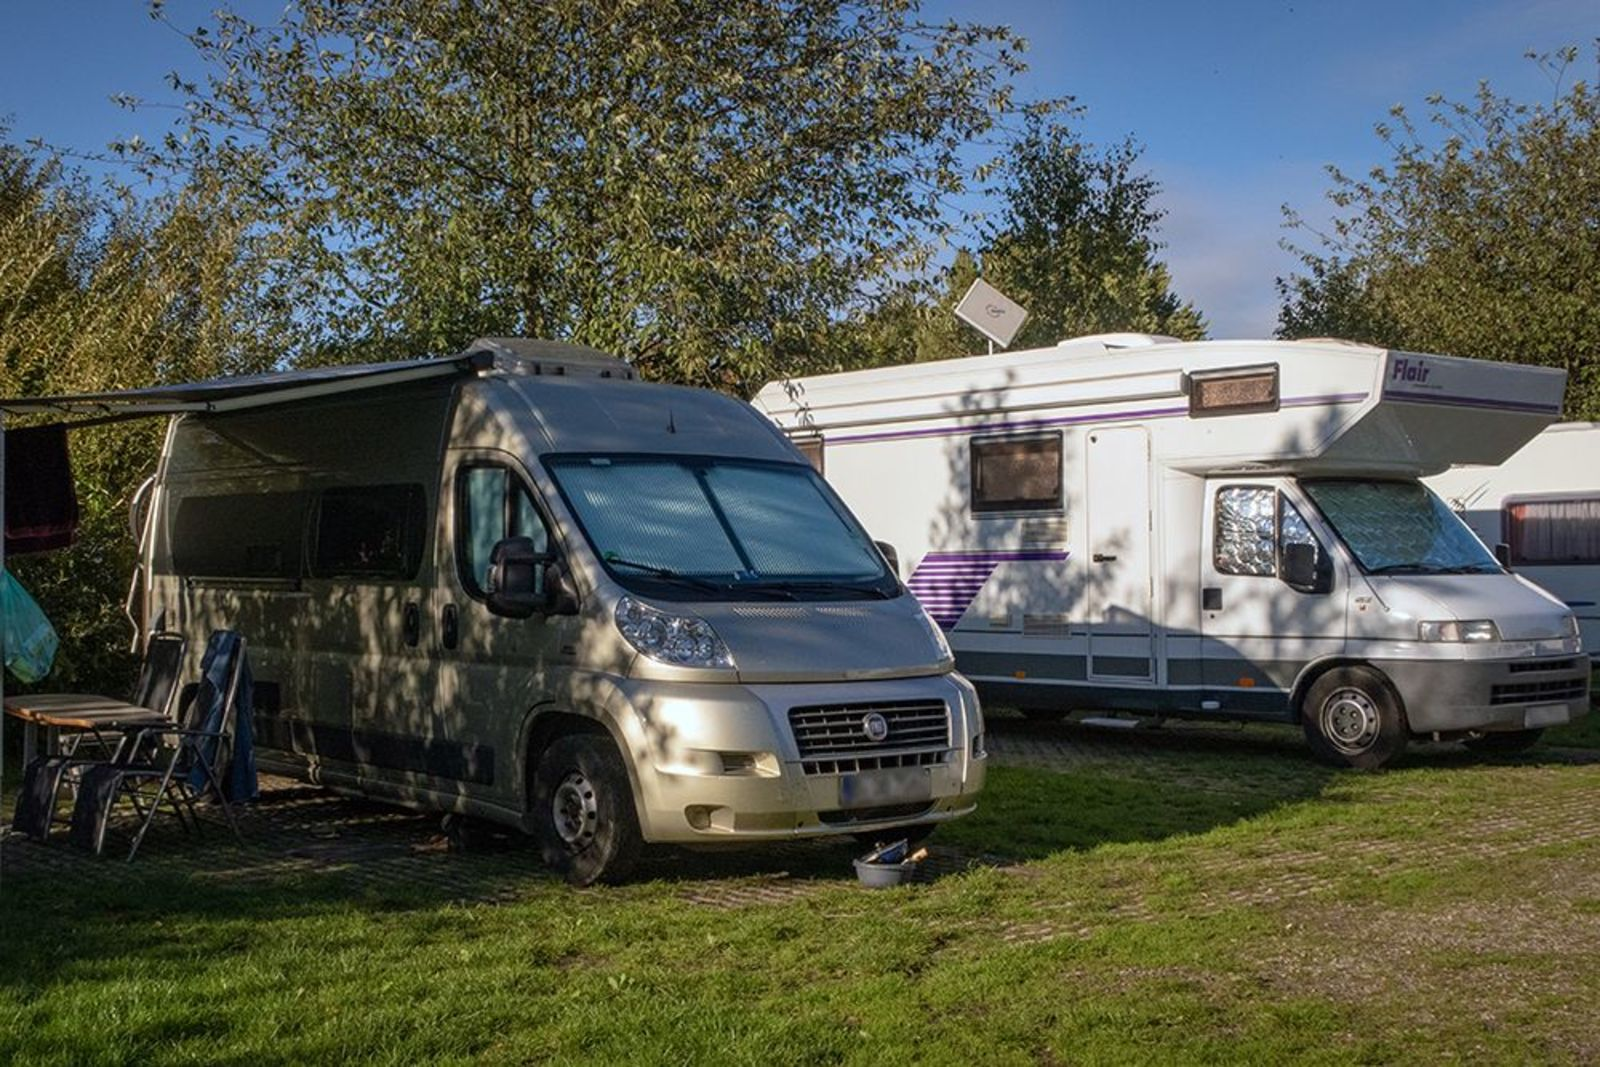 Two motorhome/camper pitches side by side on a corner